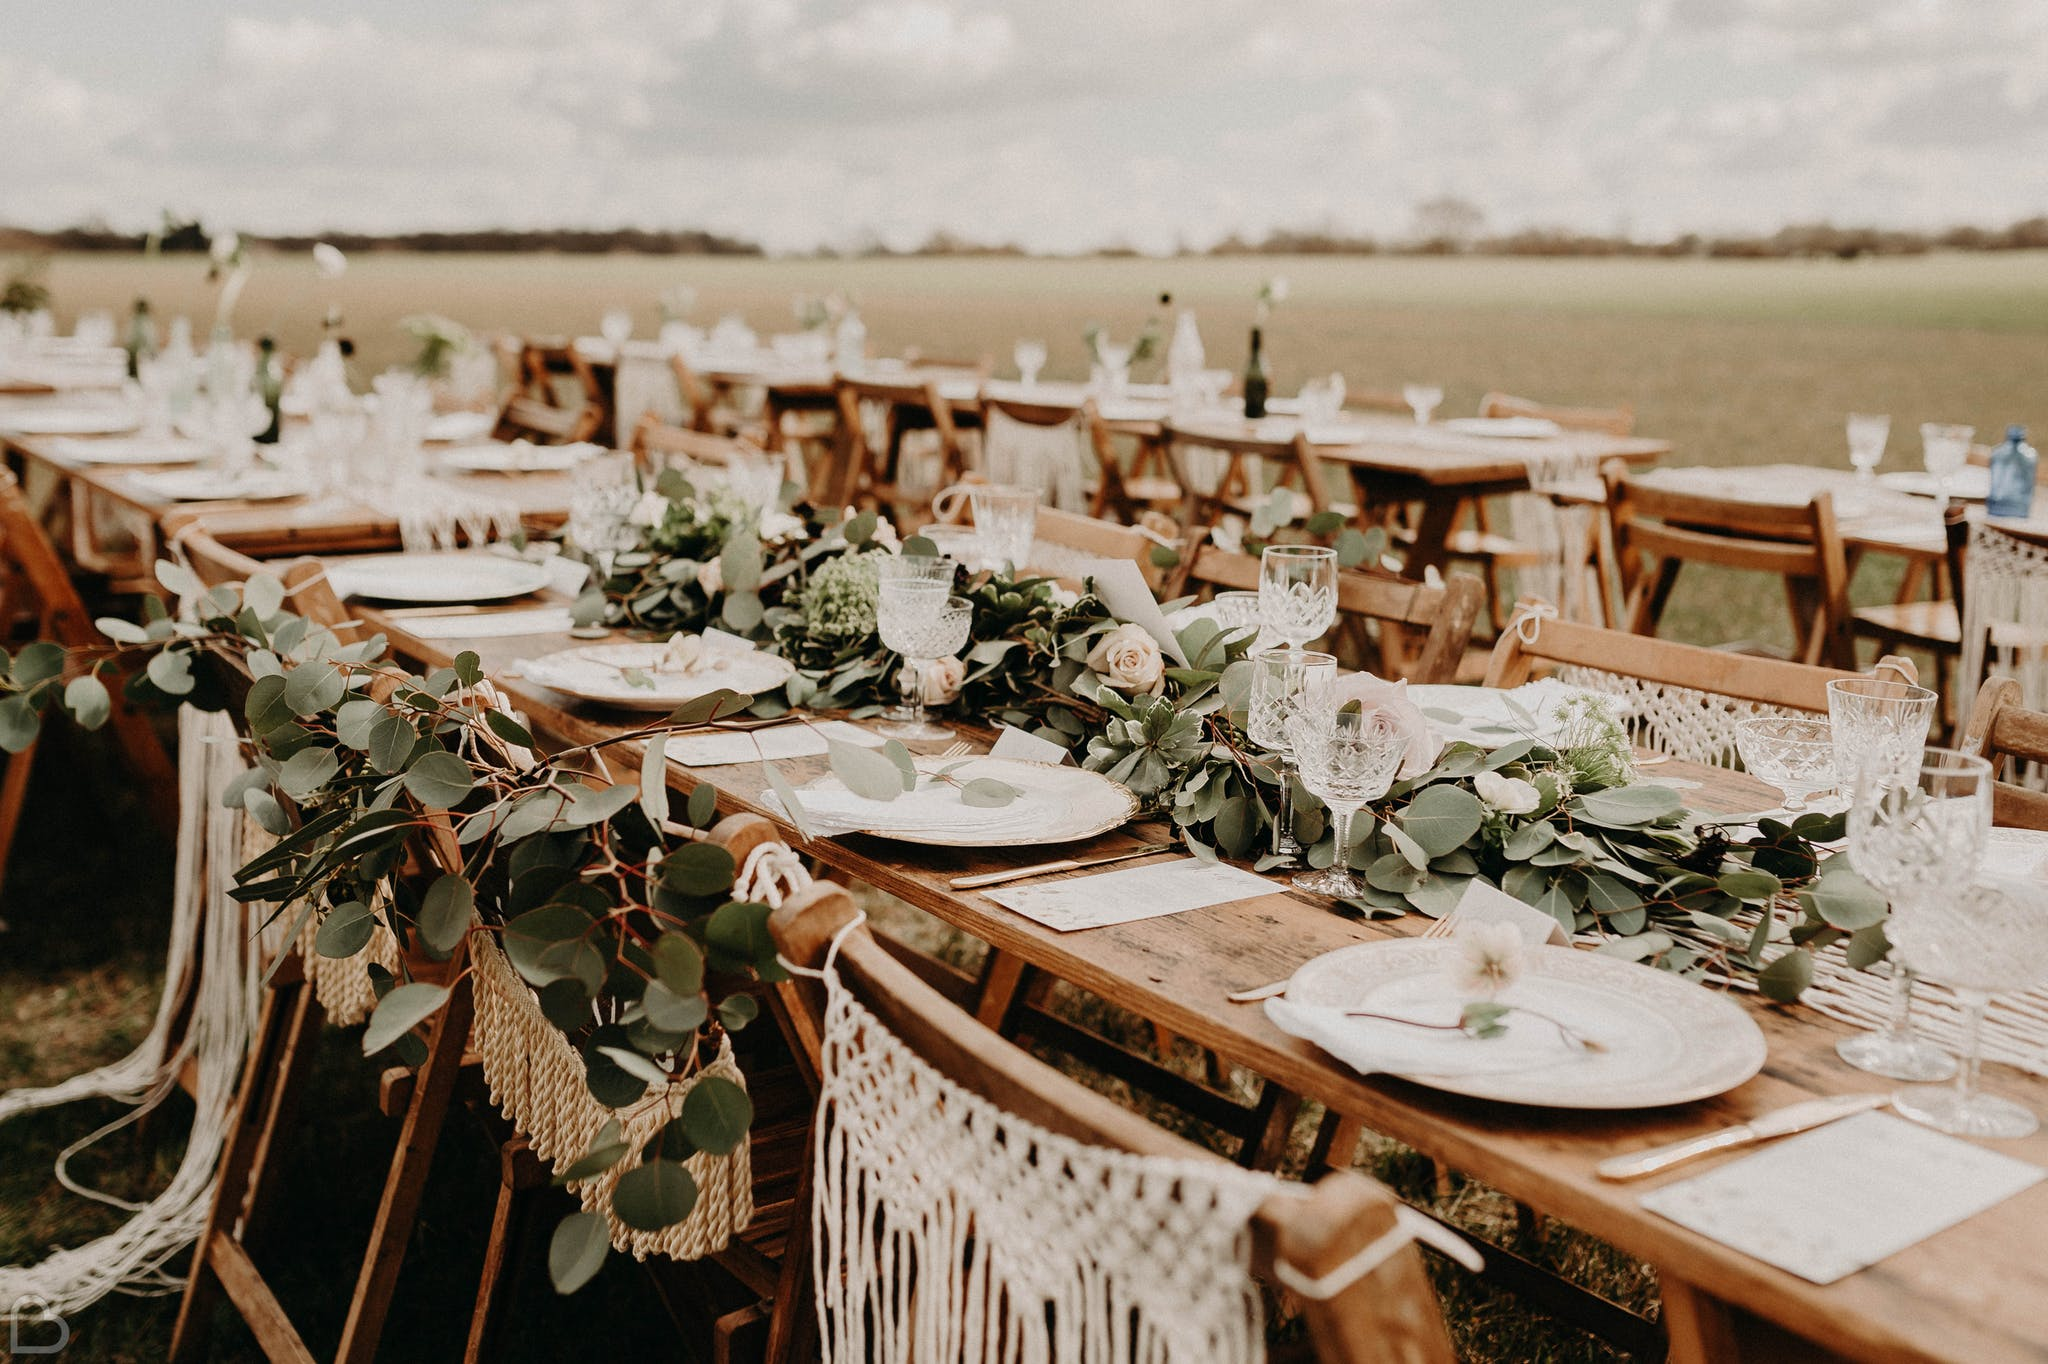 Tables set for a boho wedding at The Barns at Lodge Farm, a wedding venue in essex.